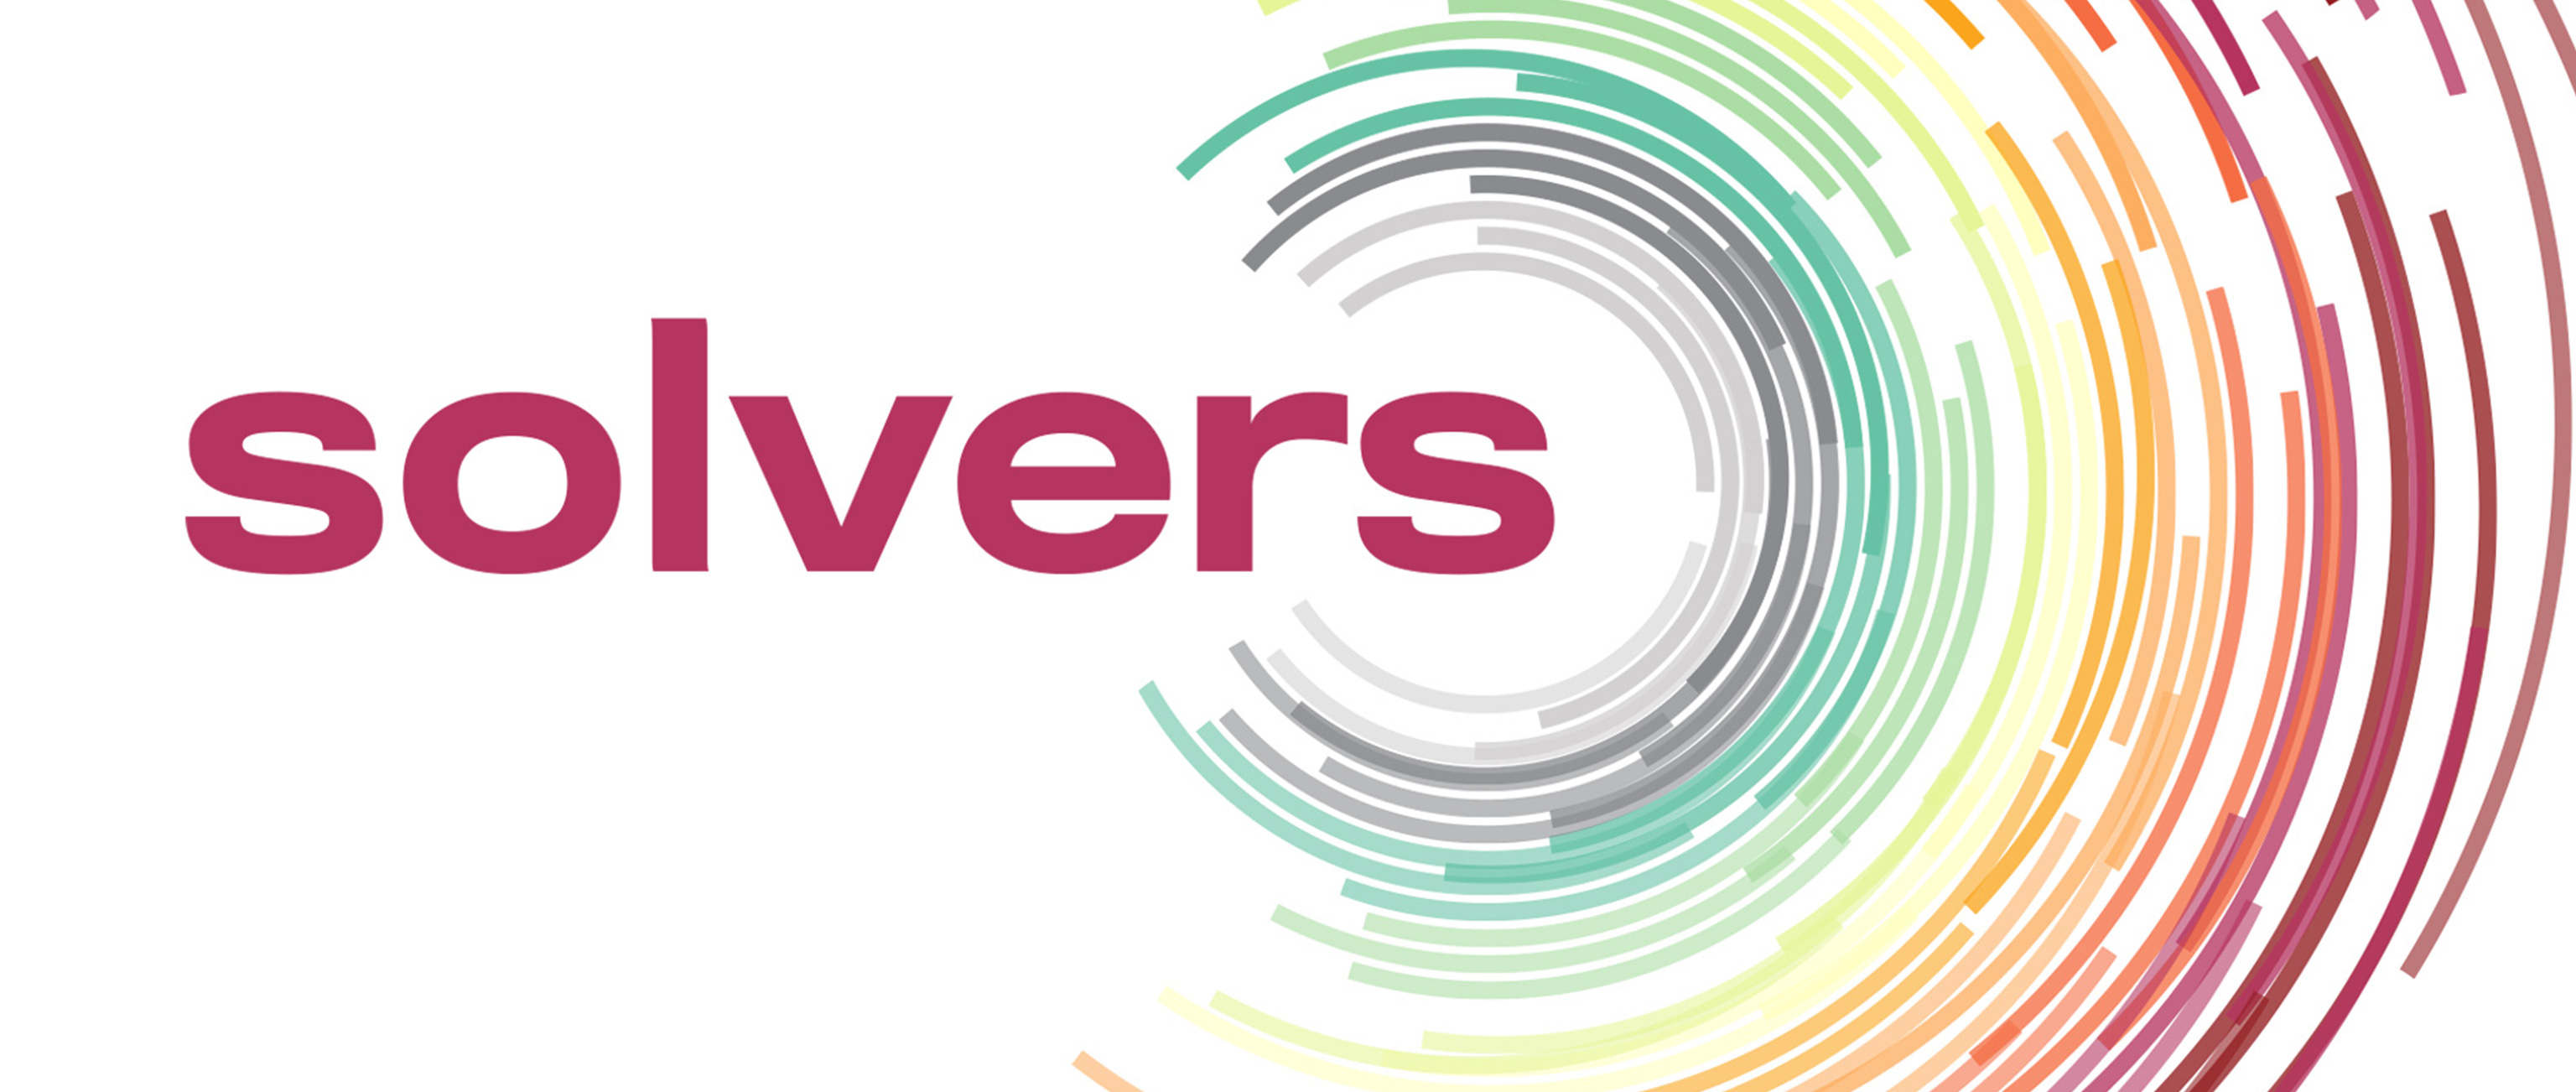 A graphic illustration of word 'solvers' surrounded by dozens of concentric, multicolored, circles made of partially broken lines